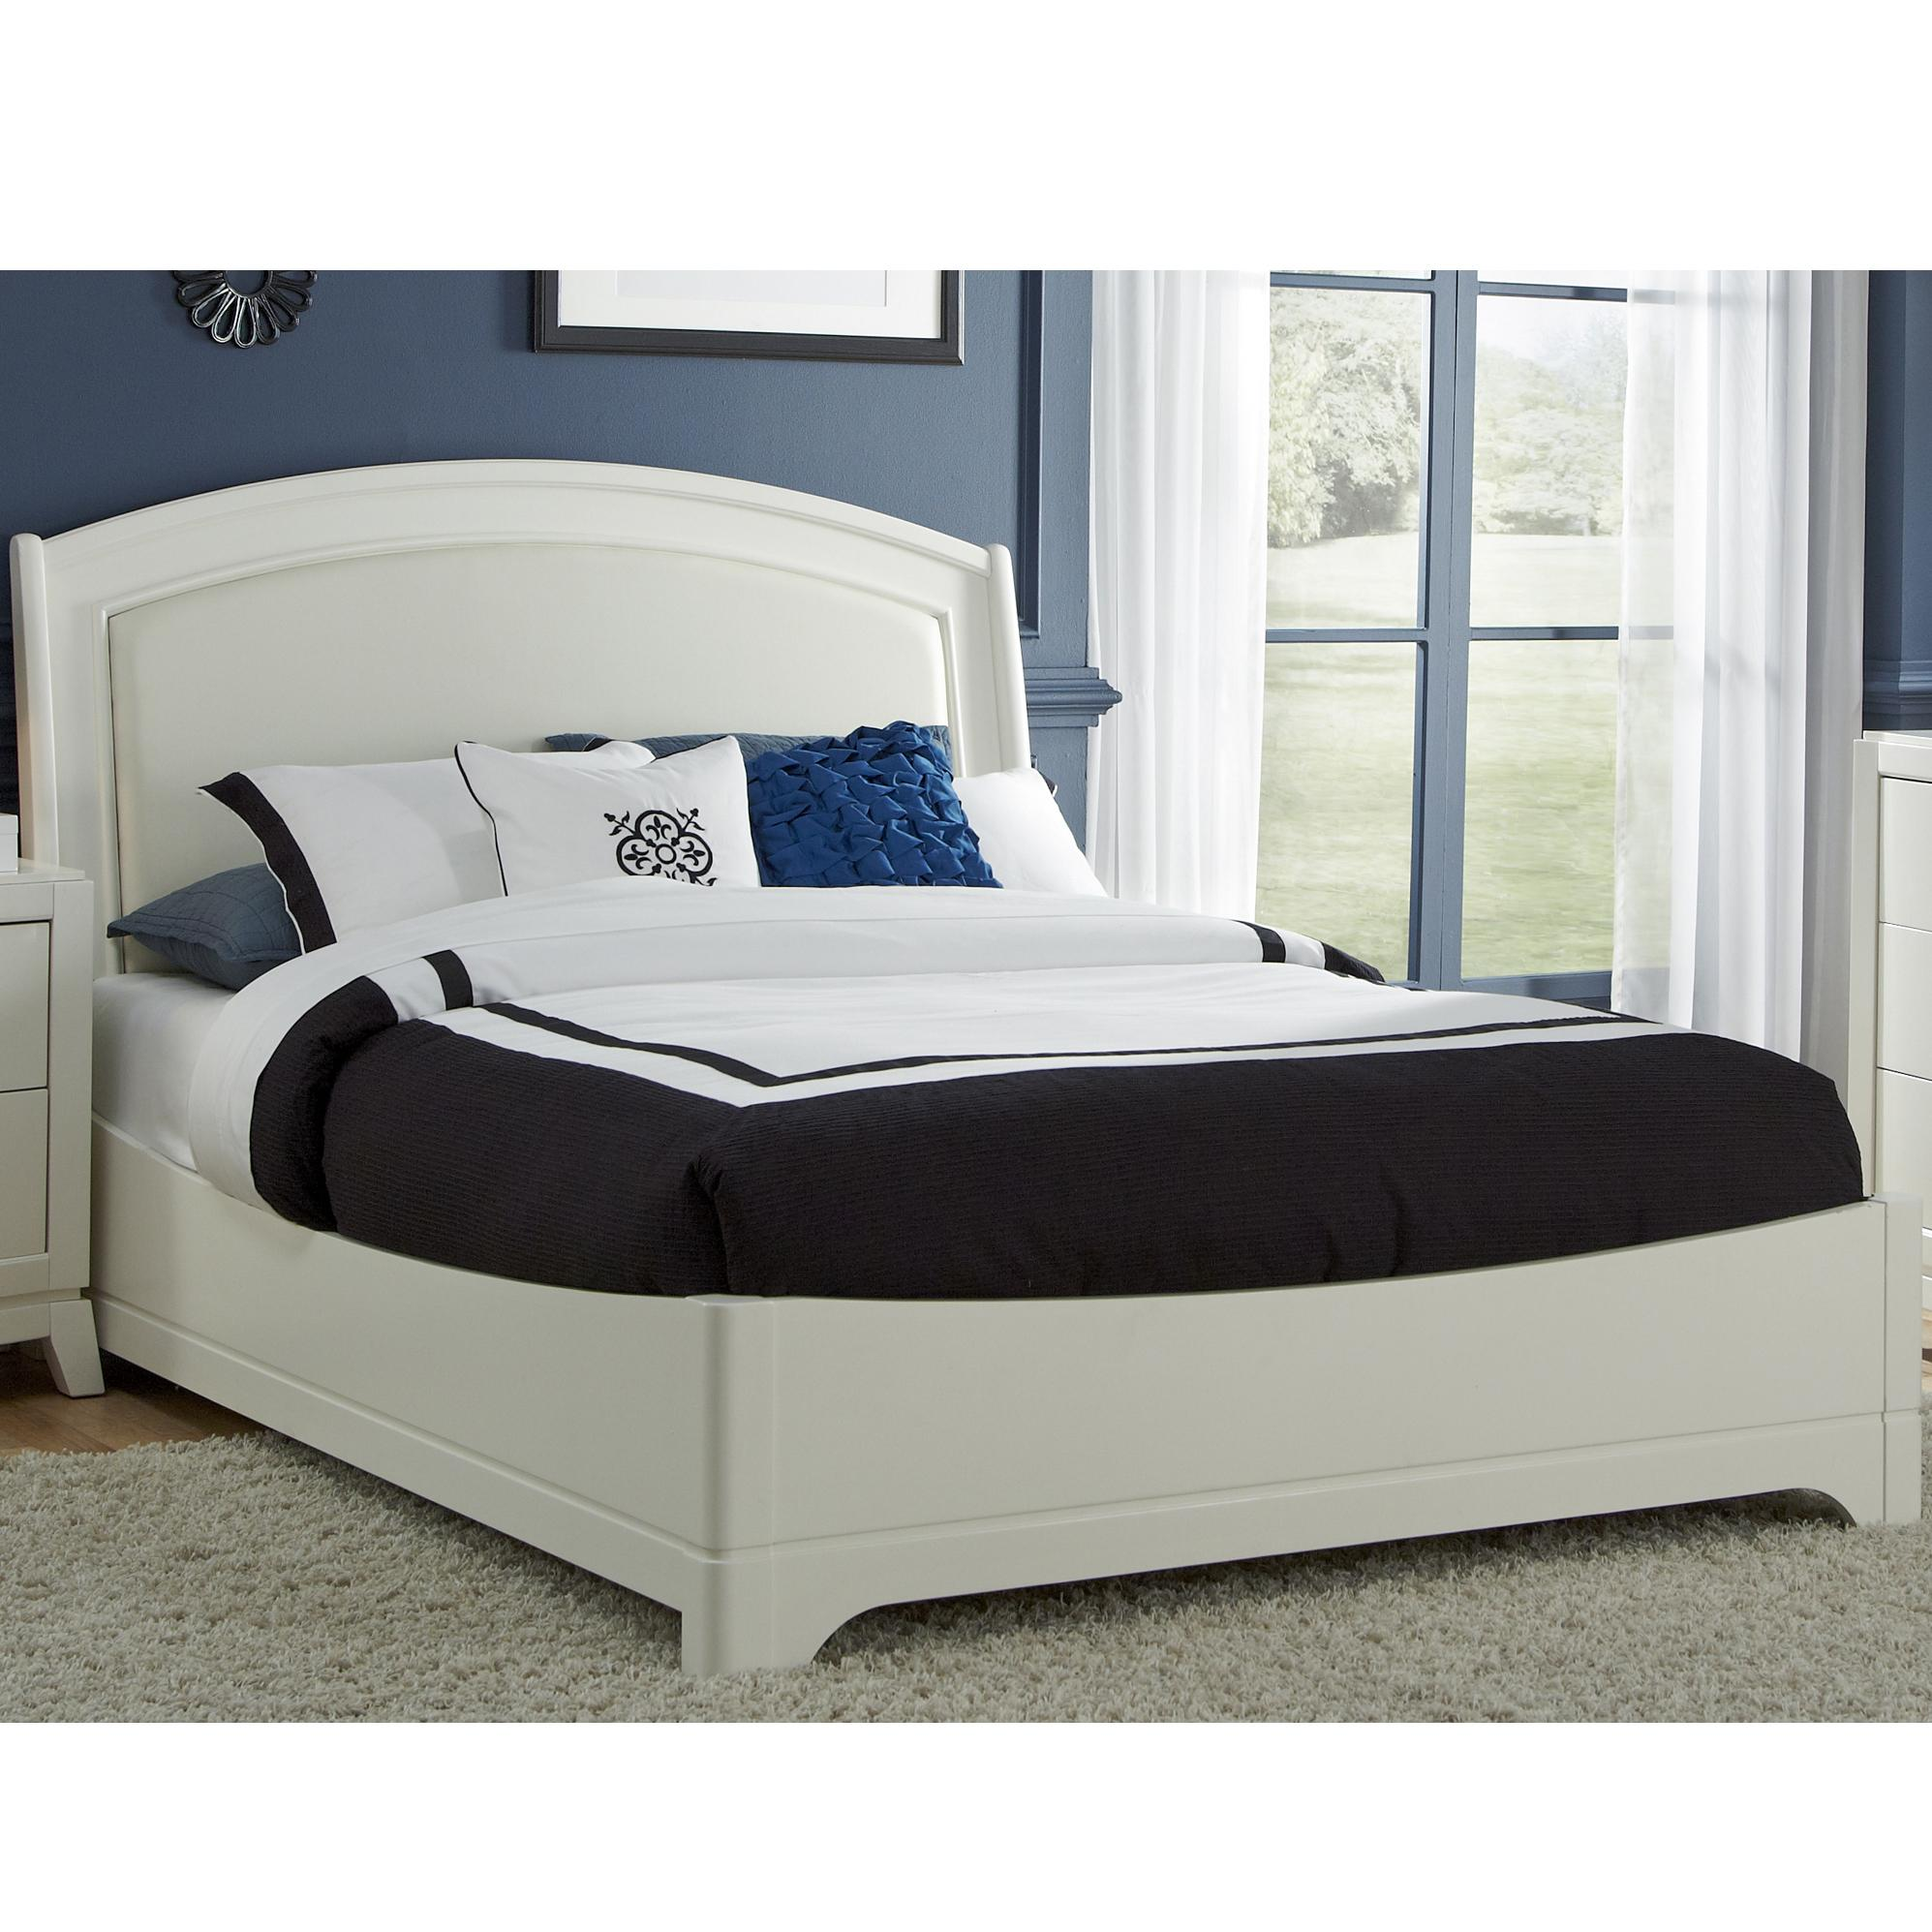 Liberty Furniture Avalon II Queen Leather Bed - Item Number: 205-BR-QLB